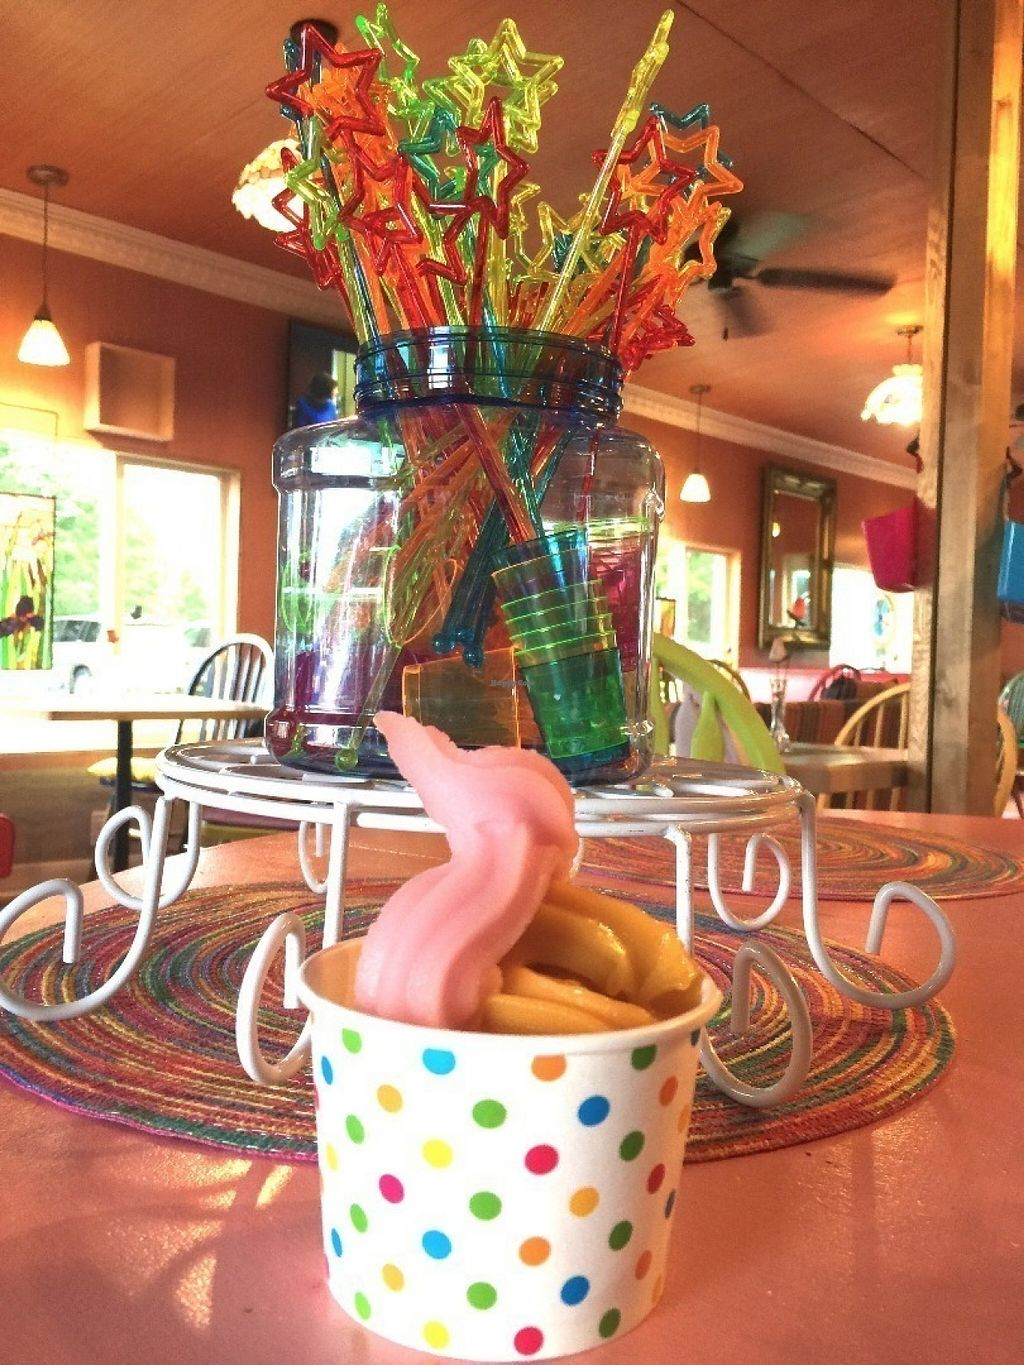 """Photo of CLOSED: Stonewall Corner  by <a href=""""/members/profile/BeccaBochenek"""">BeccaBochenek</a> <br/>Soft serve non-dairy Palazzolo's Artisan Gelato & Sorbetto as well. Watermelon, Mango, Cookies and Cream, Tahitian Vanilla, Chocolate.  <br/> July 19, 2016  - <a href='/contact/abuse/image/76104/161006'>Report</a>"""